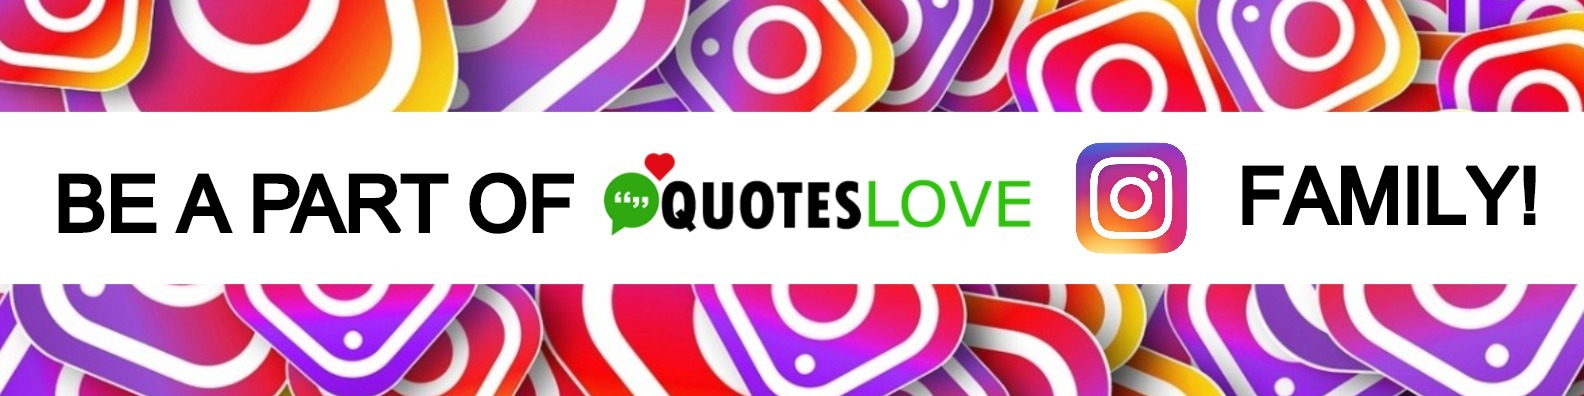 Be a part of QuotesLove.xyz Instagram Family!